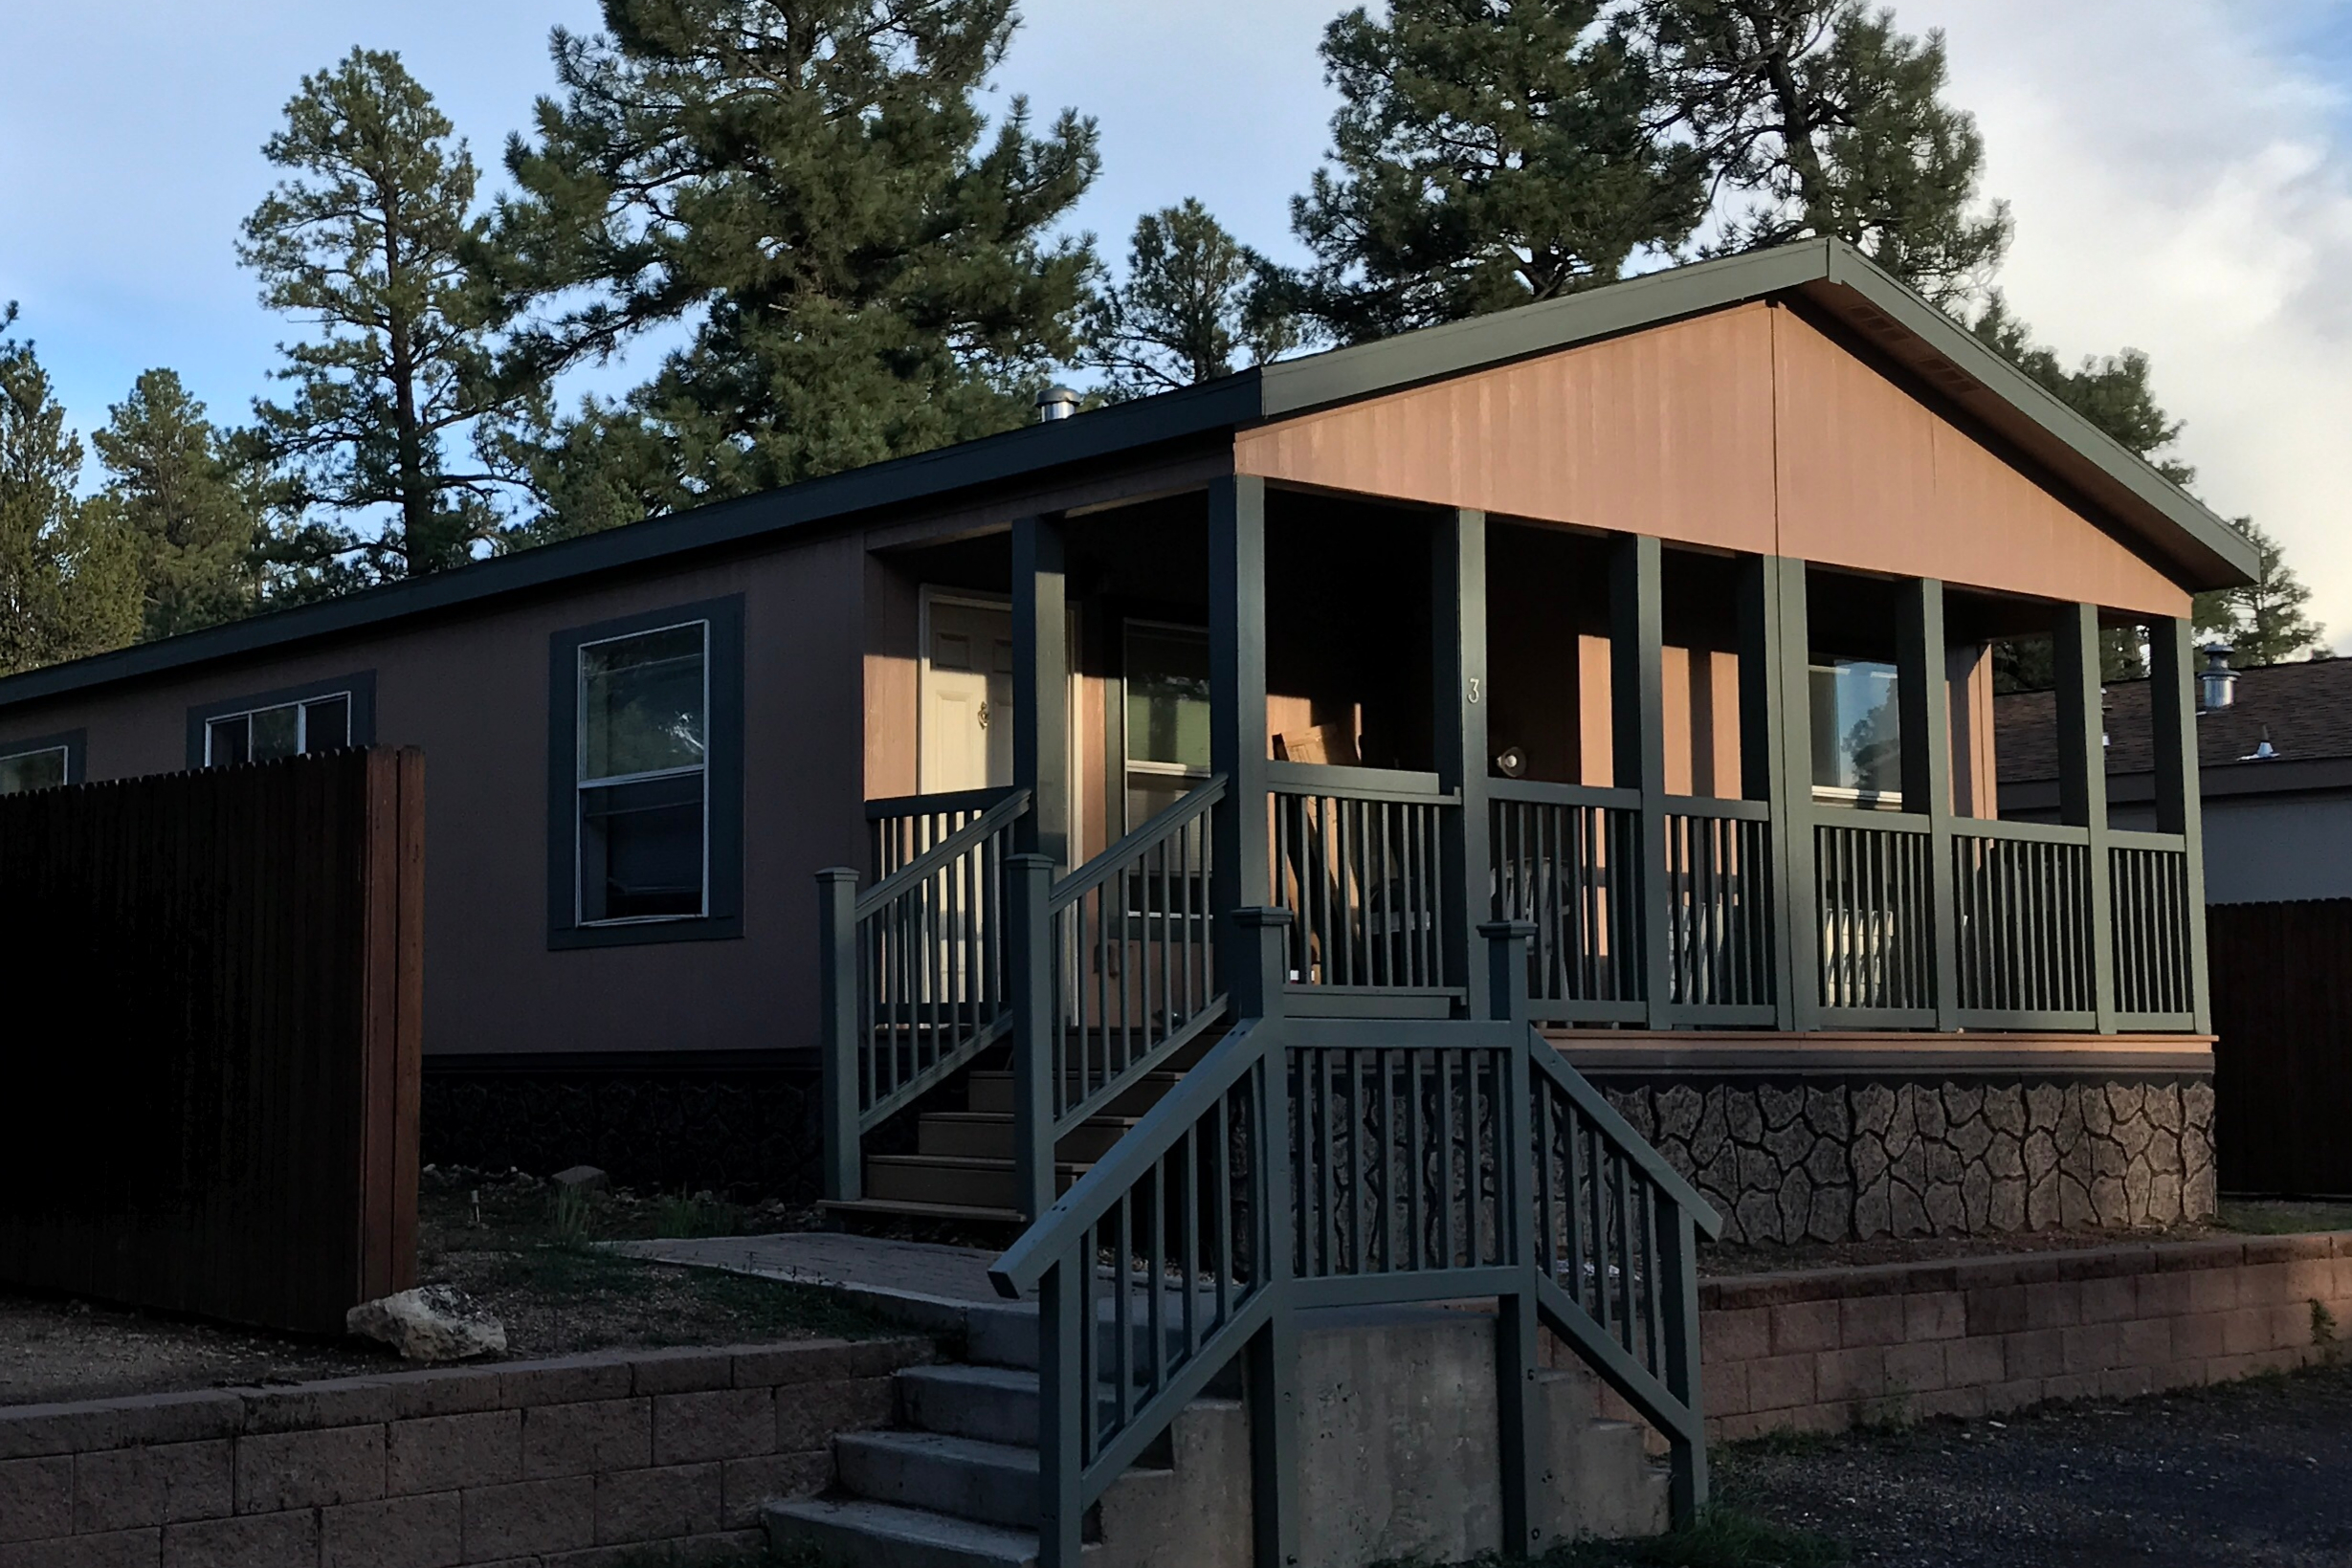 Grand Canyon Bungalow 3 Bungalows For Rent In Grand Canyon Village Arizona United States